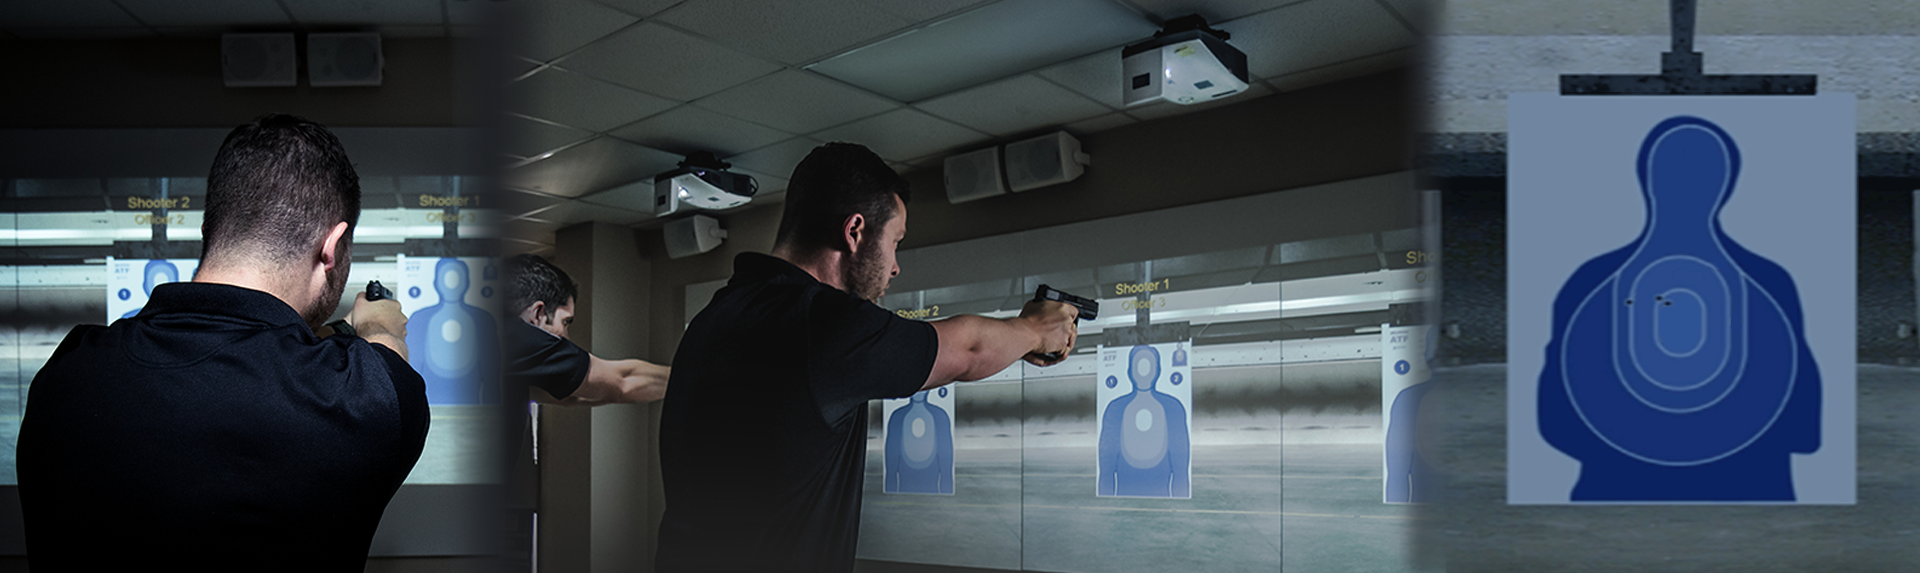 Laser Shot Firearms Training Simulators And Ranges